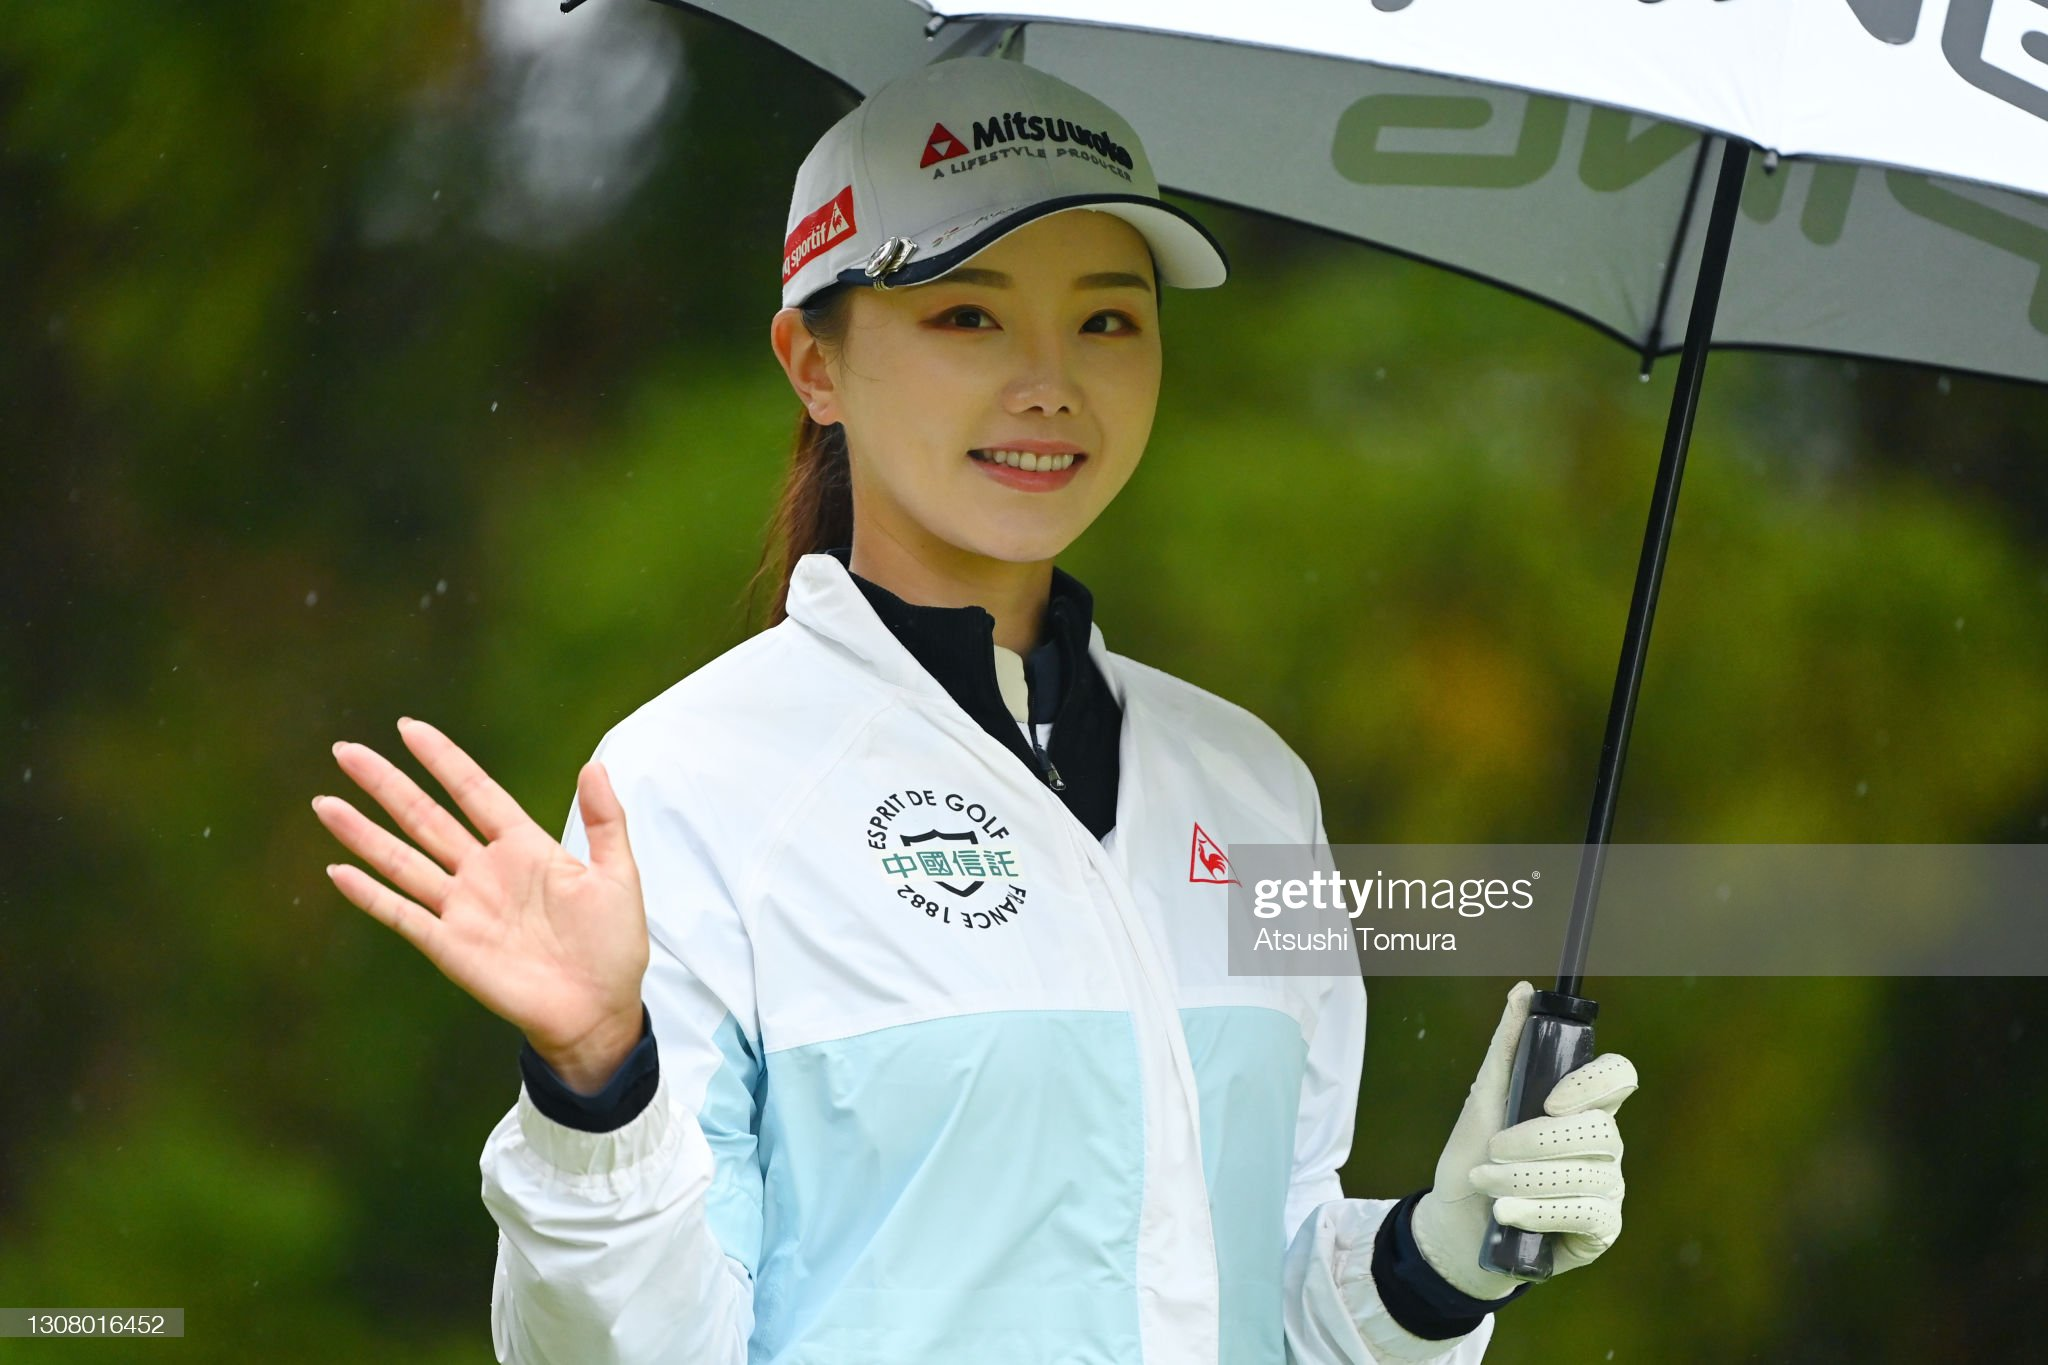 https://media.gettyimages.com/photos/yuting-seki-of-china-smiles-on-the-2nd-hole-during-the-second-round-picture-id1308016452?s=2048x2048